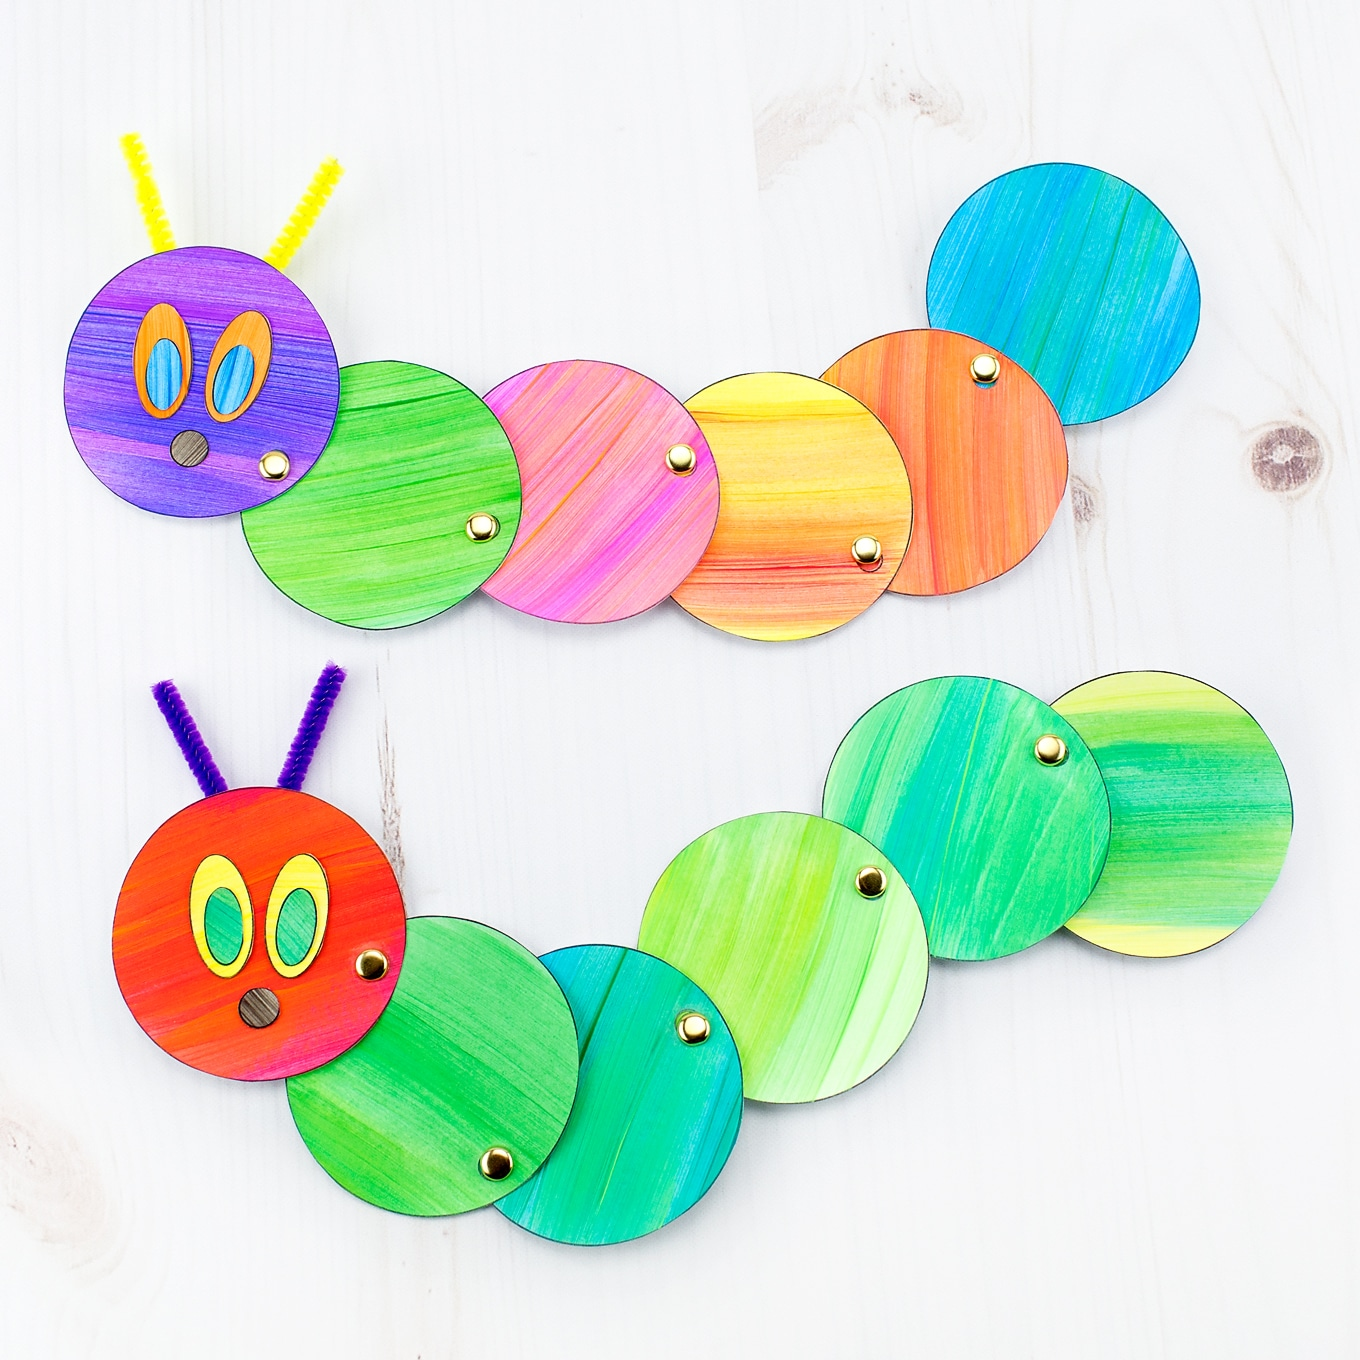 Caterpillar Suncatcher Craft